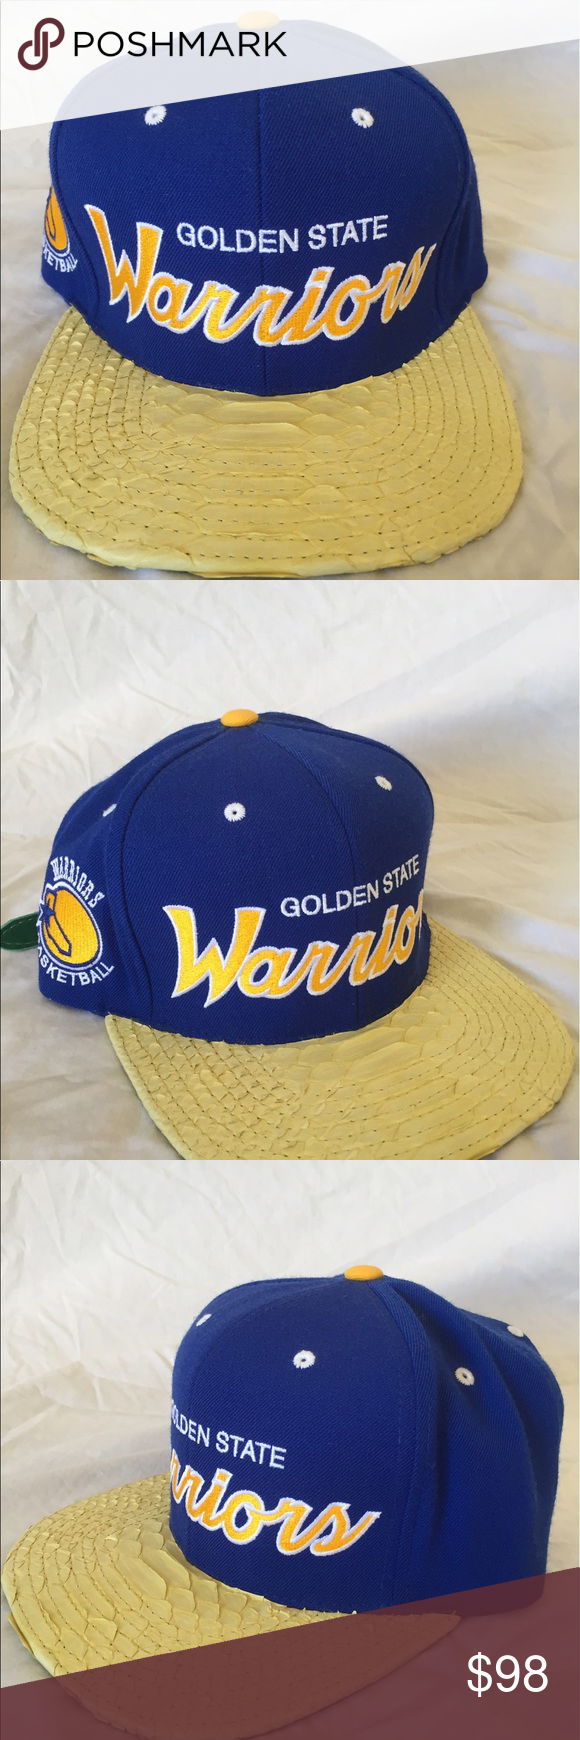 Mitchell Ness Golden State Warriors Snakeskin Hat Brand new with tags. 100  % Authentic or bf60c291c08a